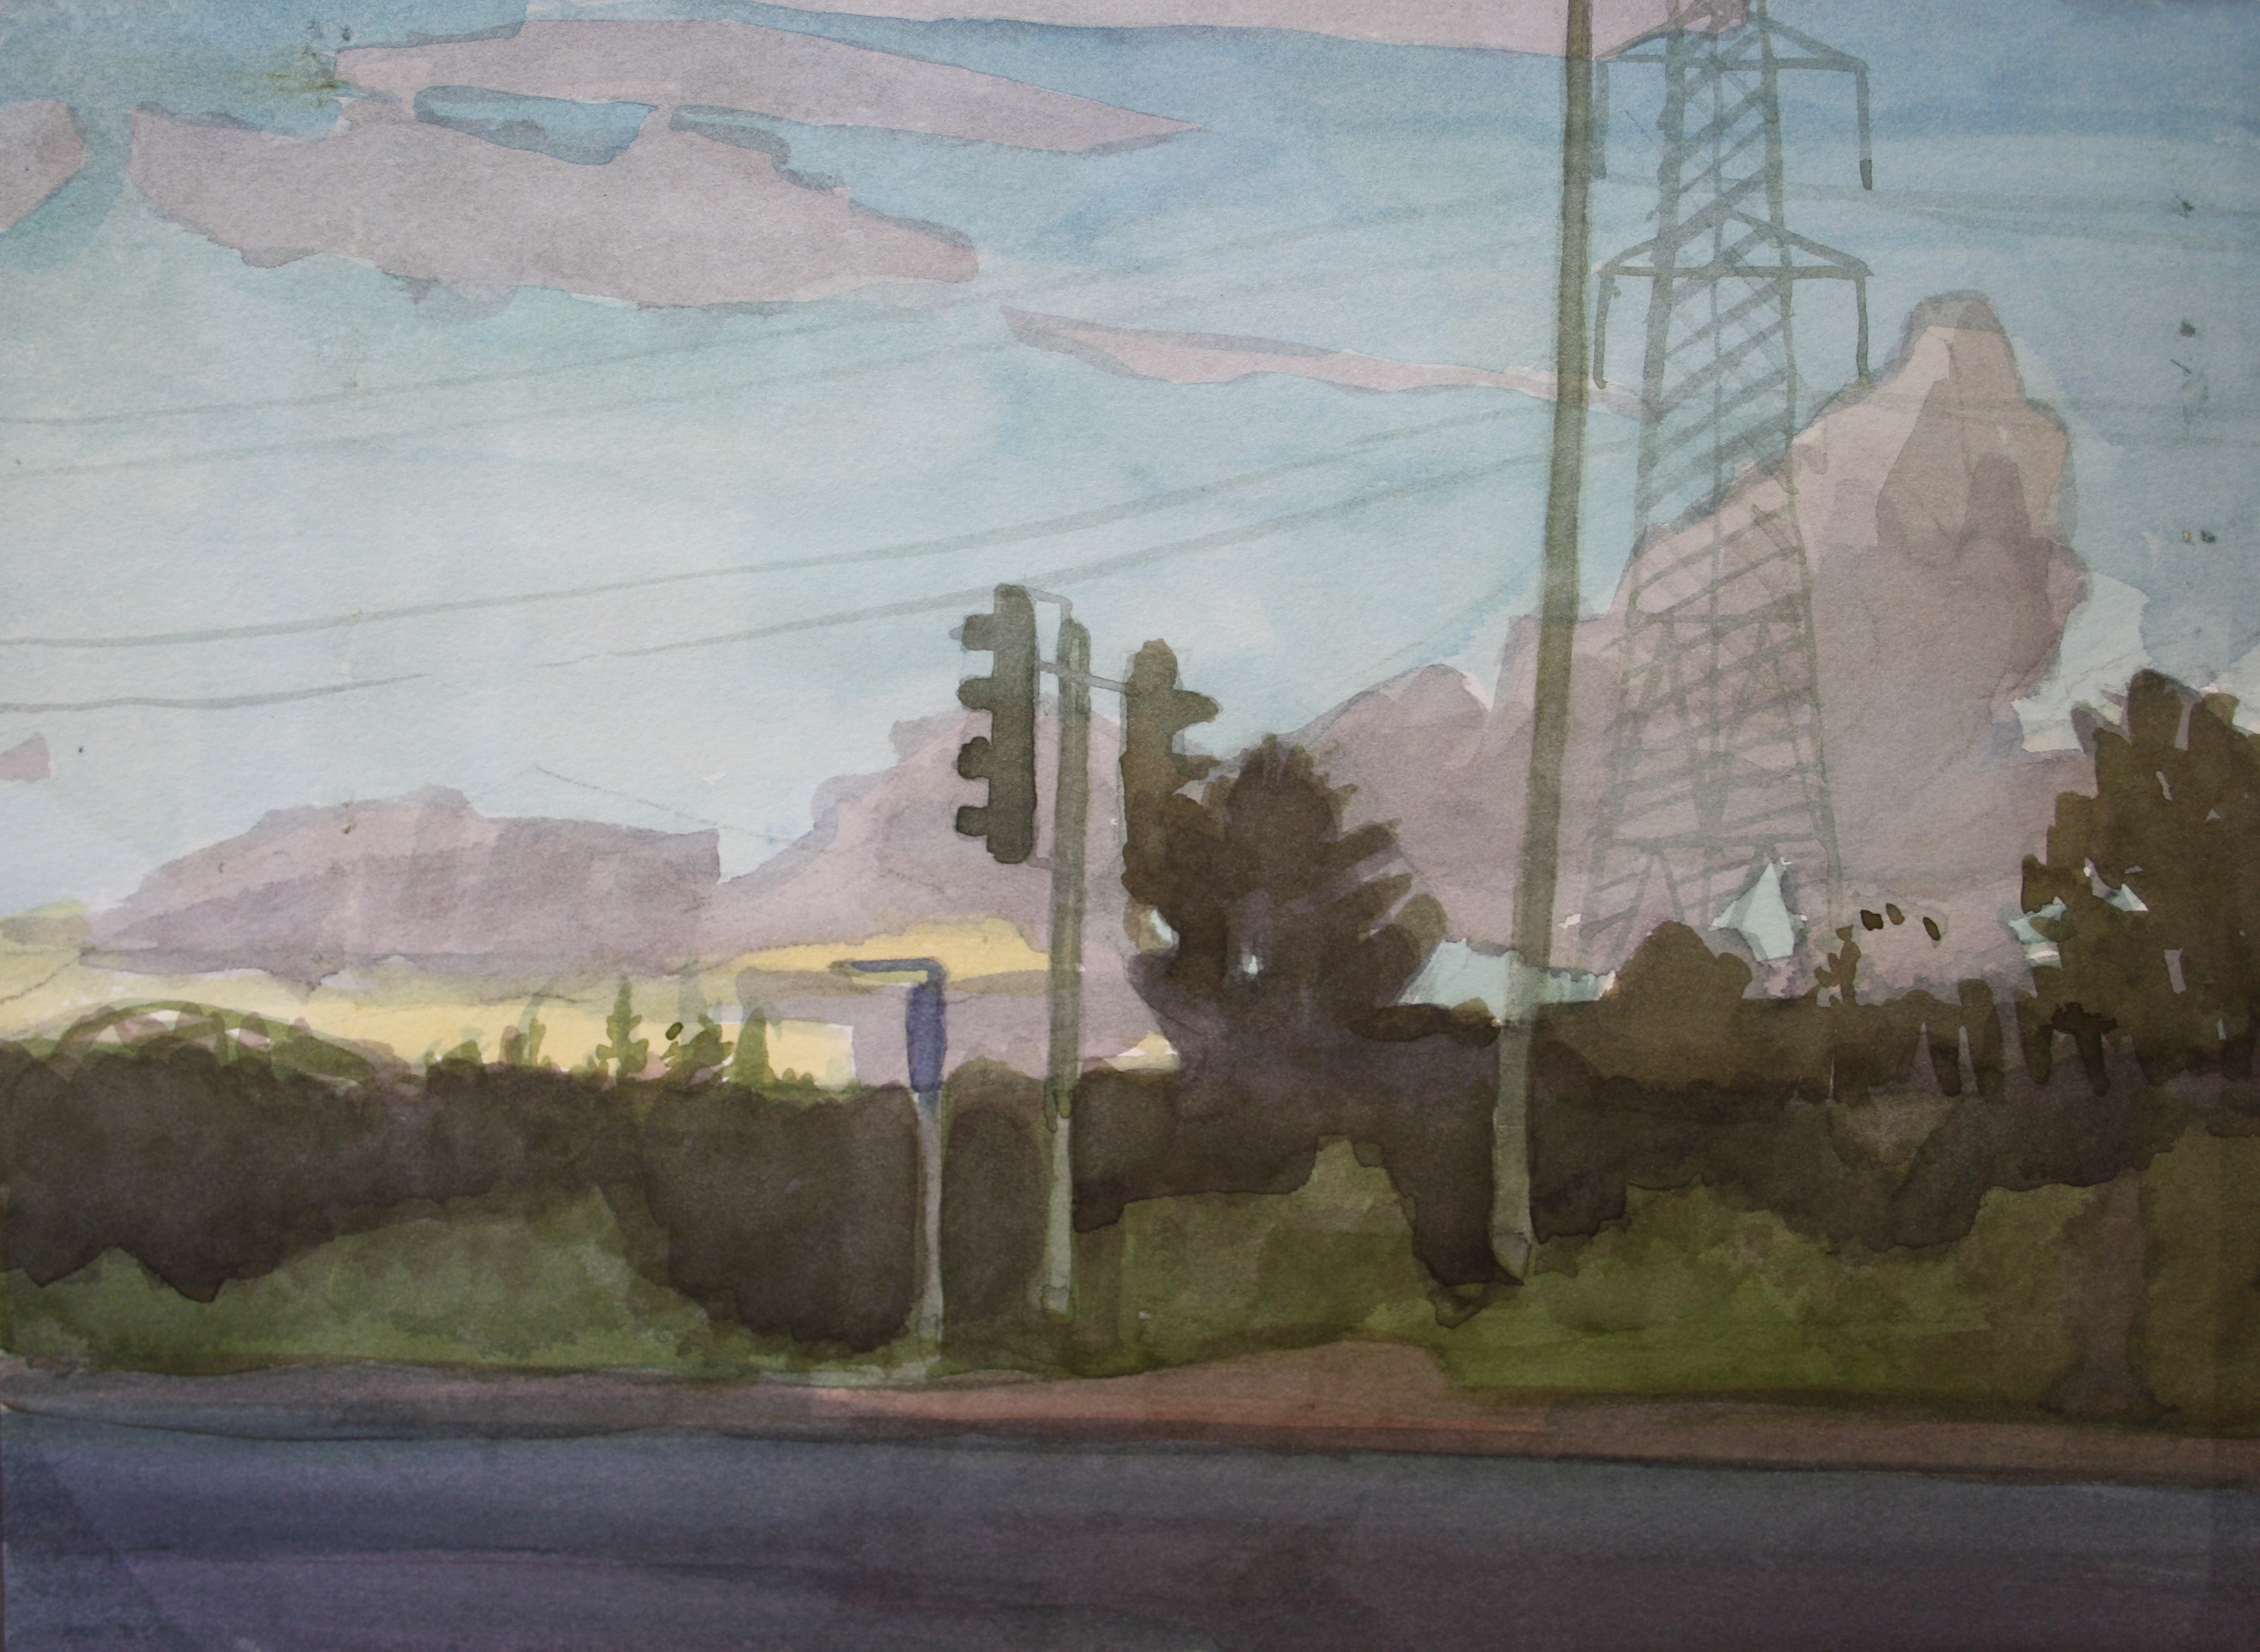 Sebastian Aplin, Rover Way, Watercolour on paper, 26 x 36 cm, 2016